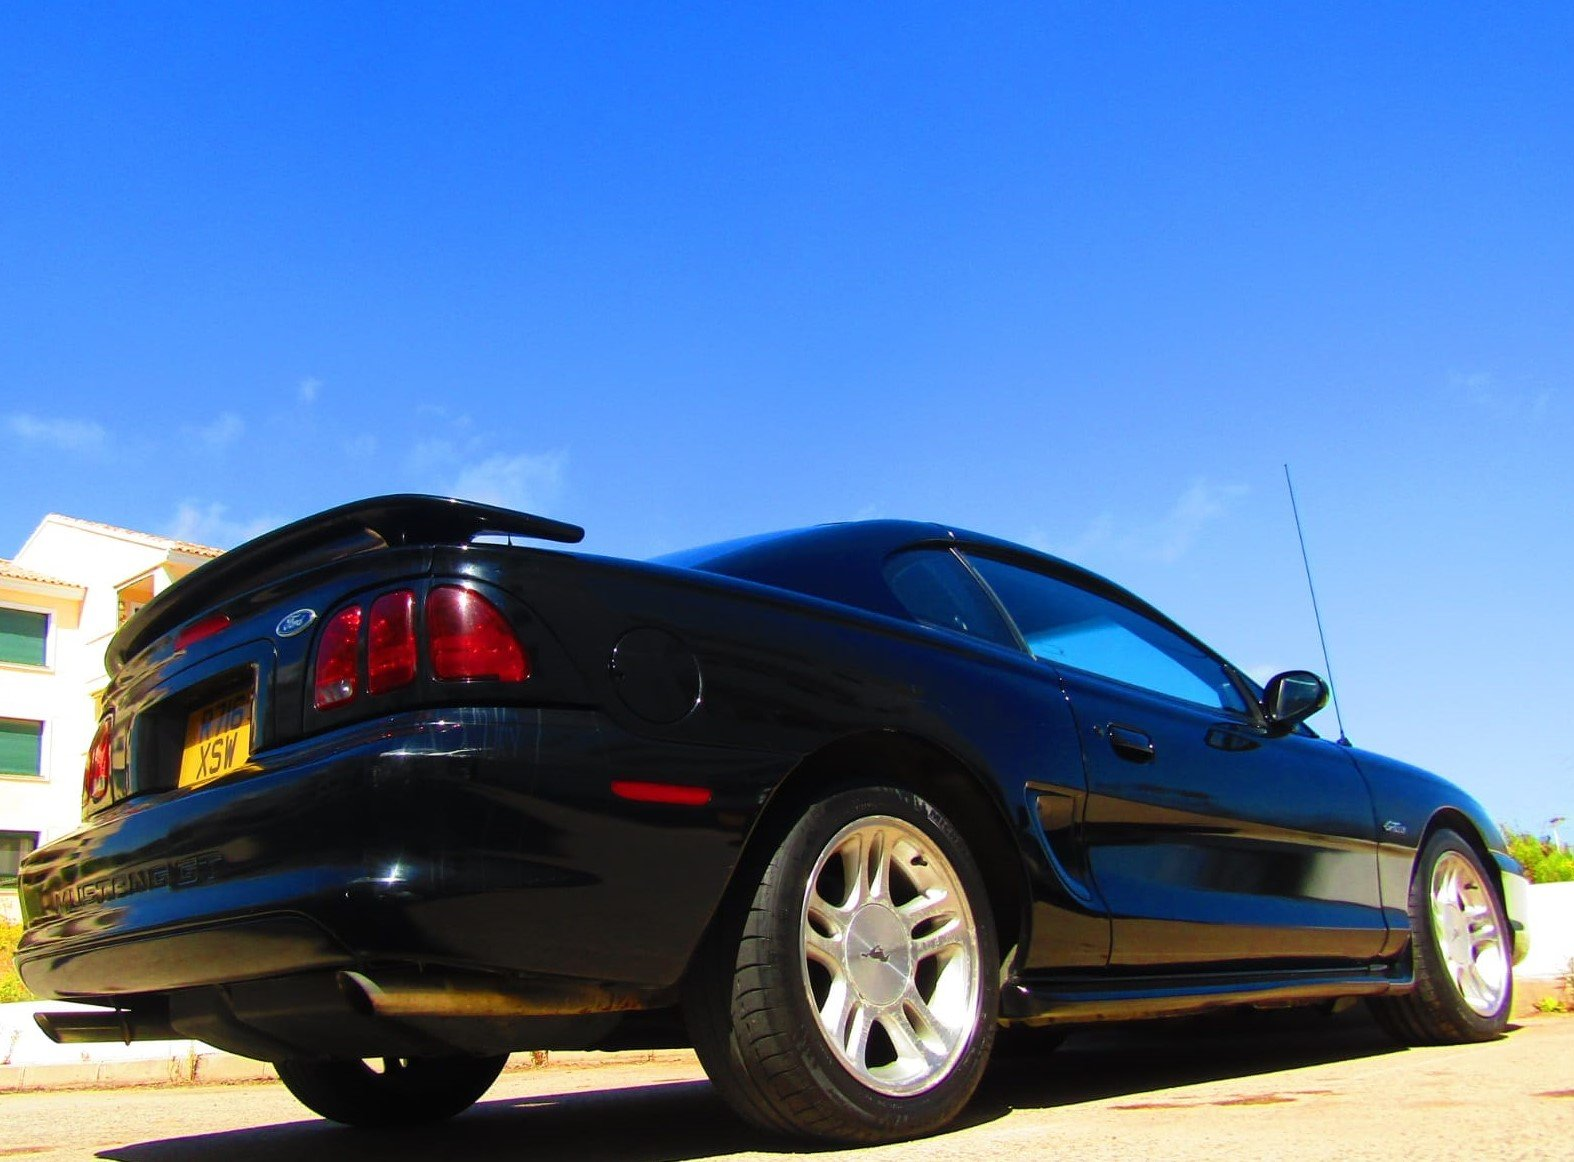 1998 LHD V8 Ford Mustang Sn 95 BLACK coupe V8 For Sale (picture 1 of 6)